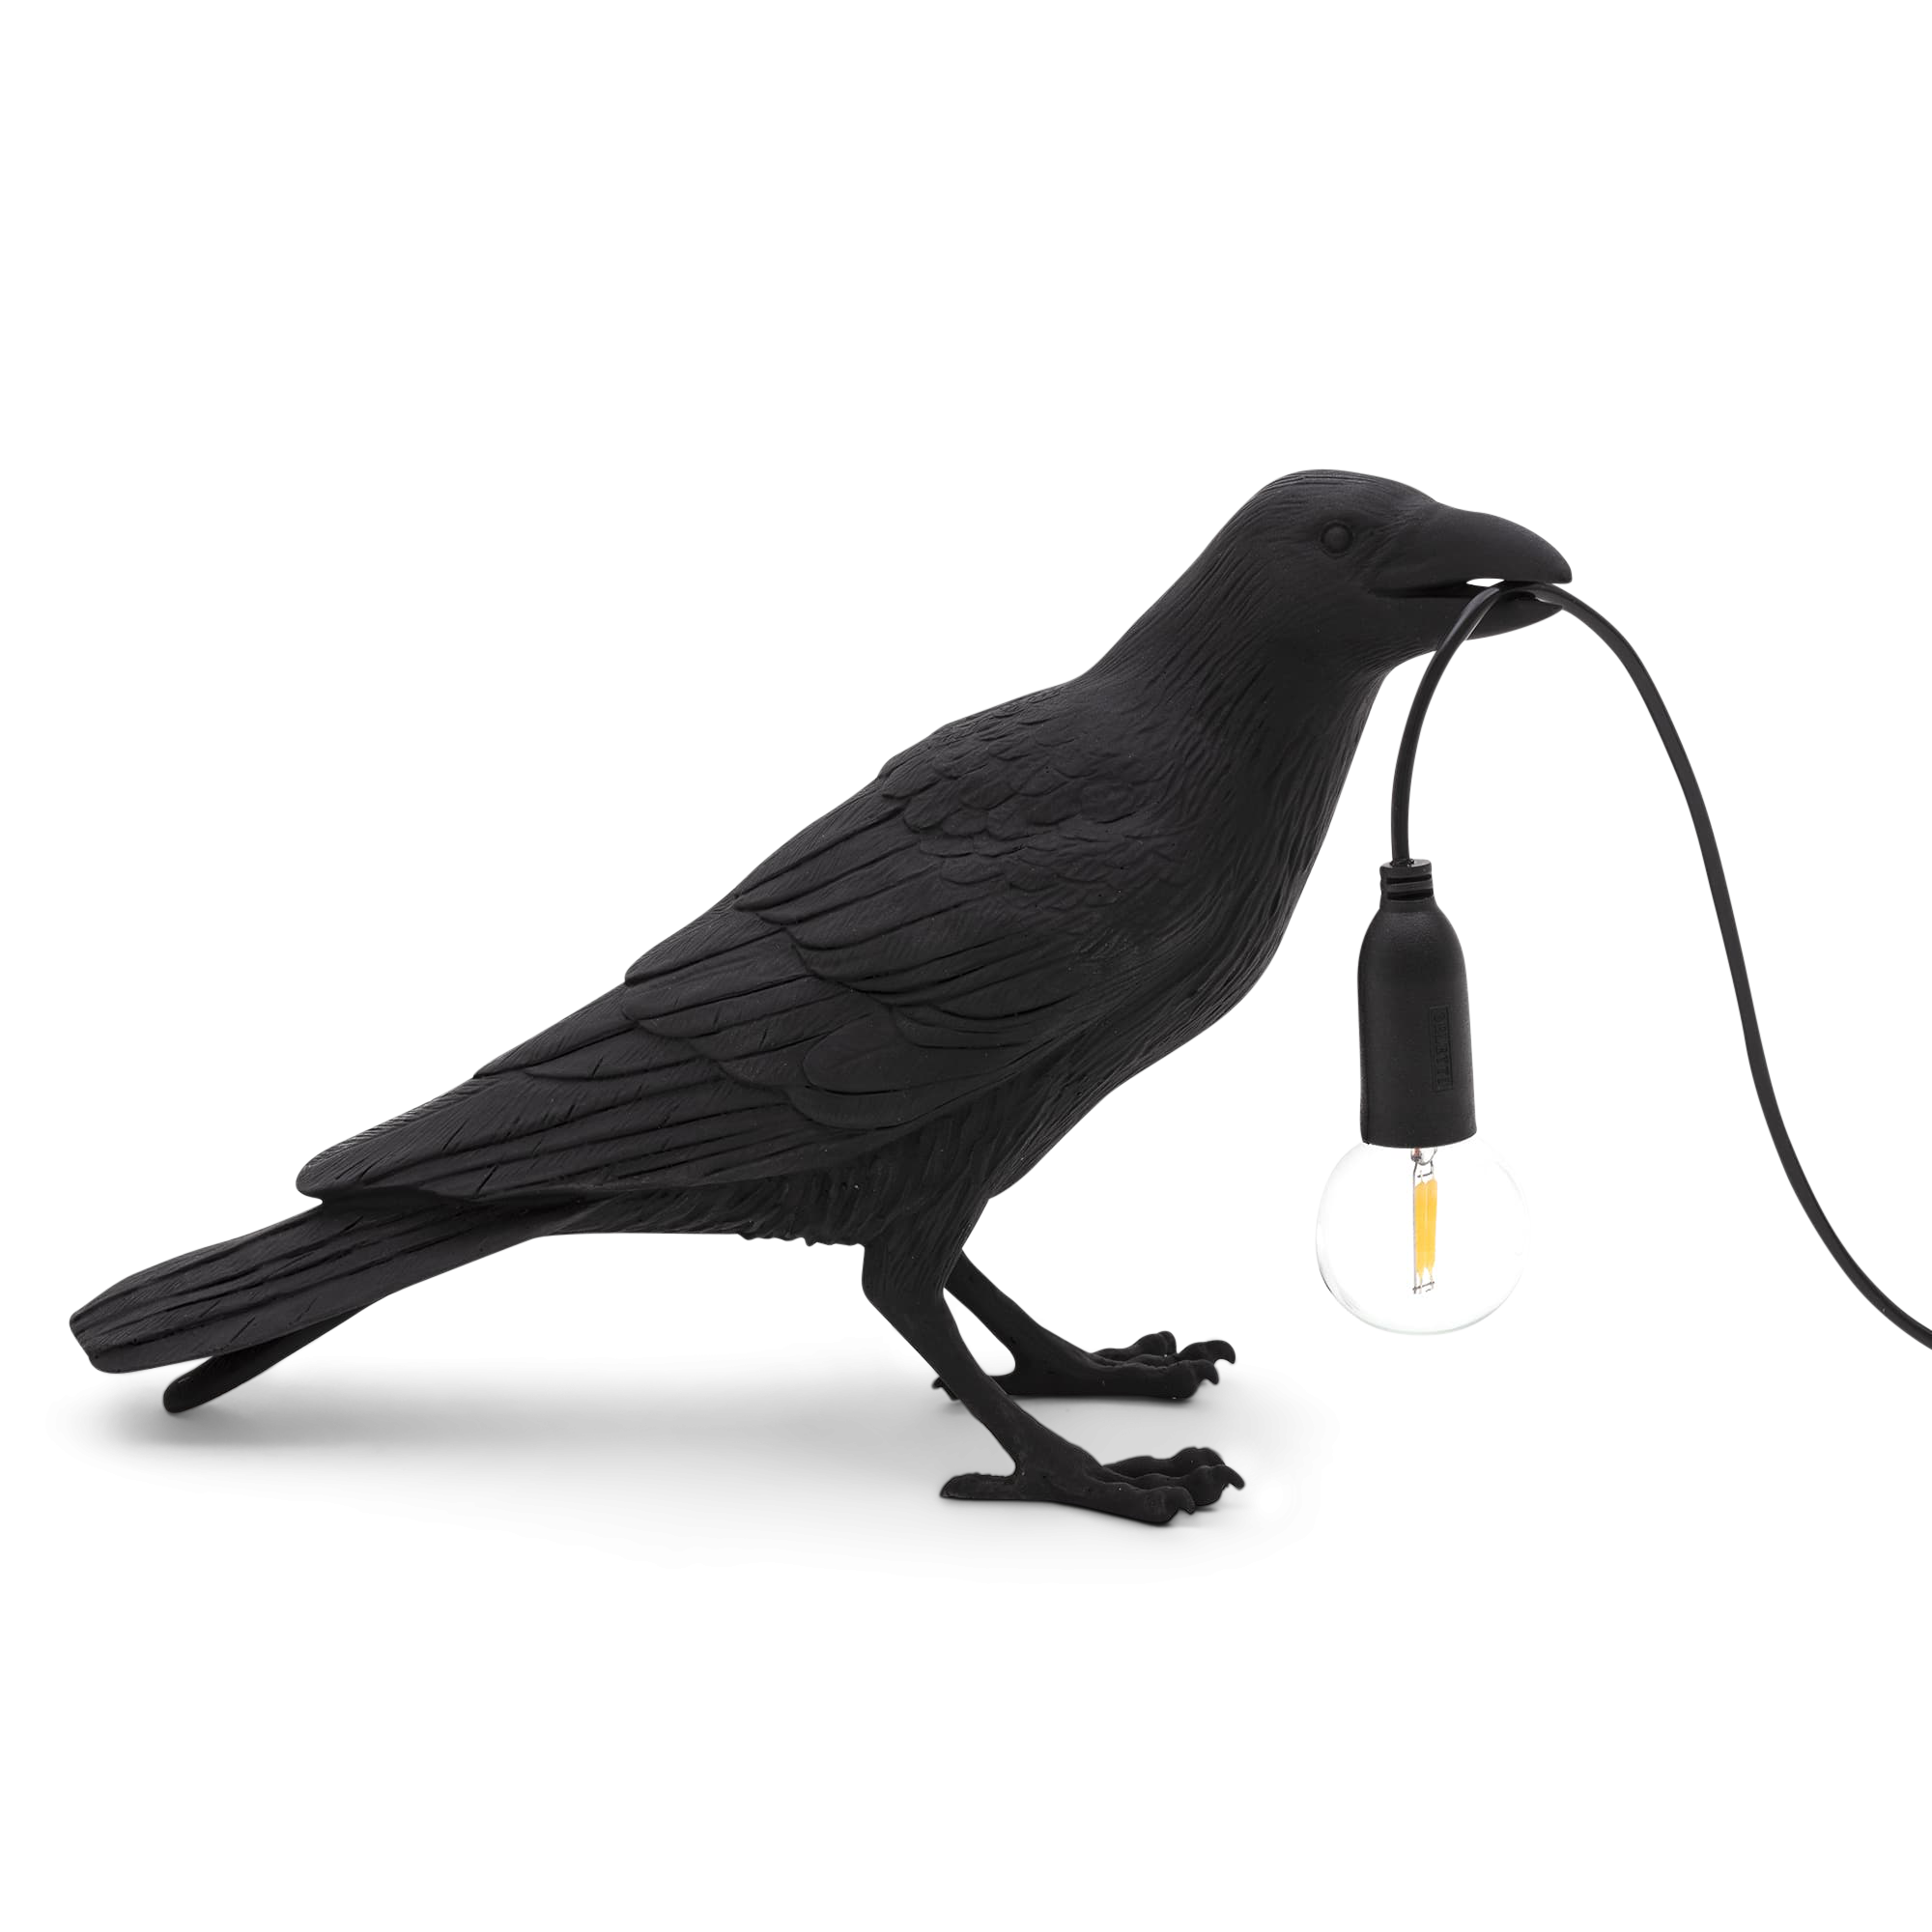 bird-lamp-waiting-black-1